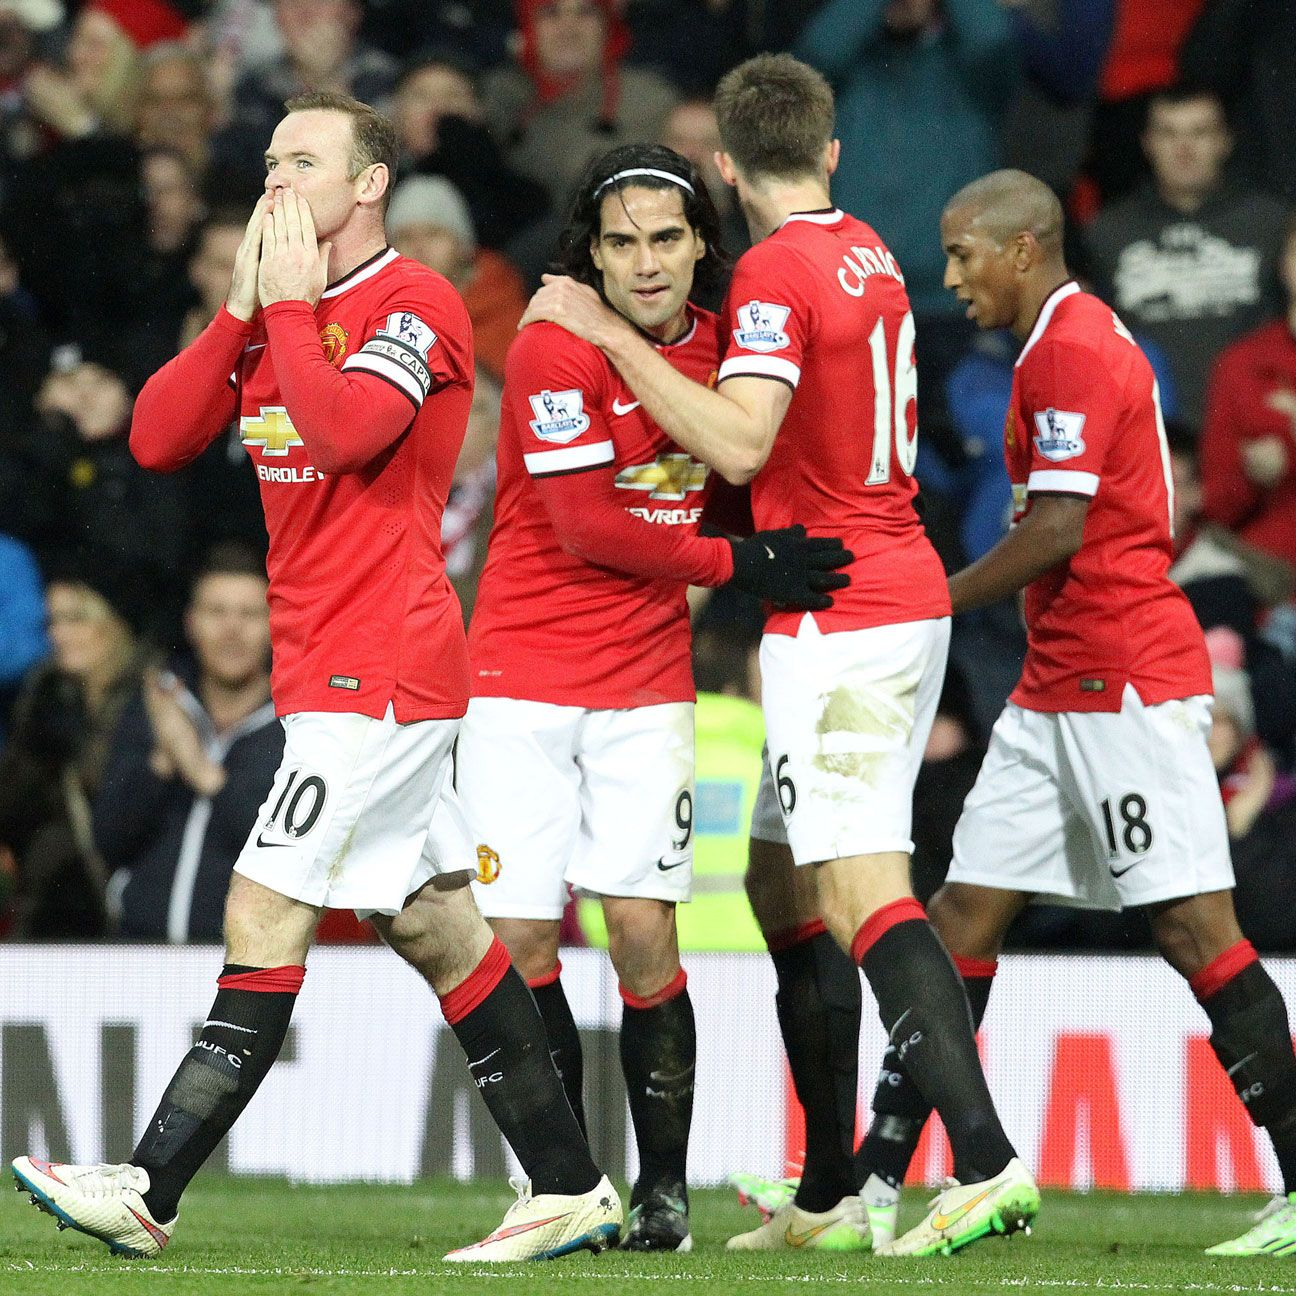 Can Manchester United run its Premier League unbeaten streak to 11 games versus Southampton?